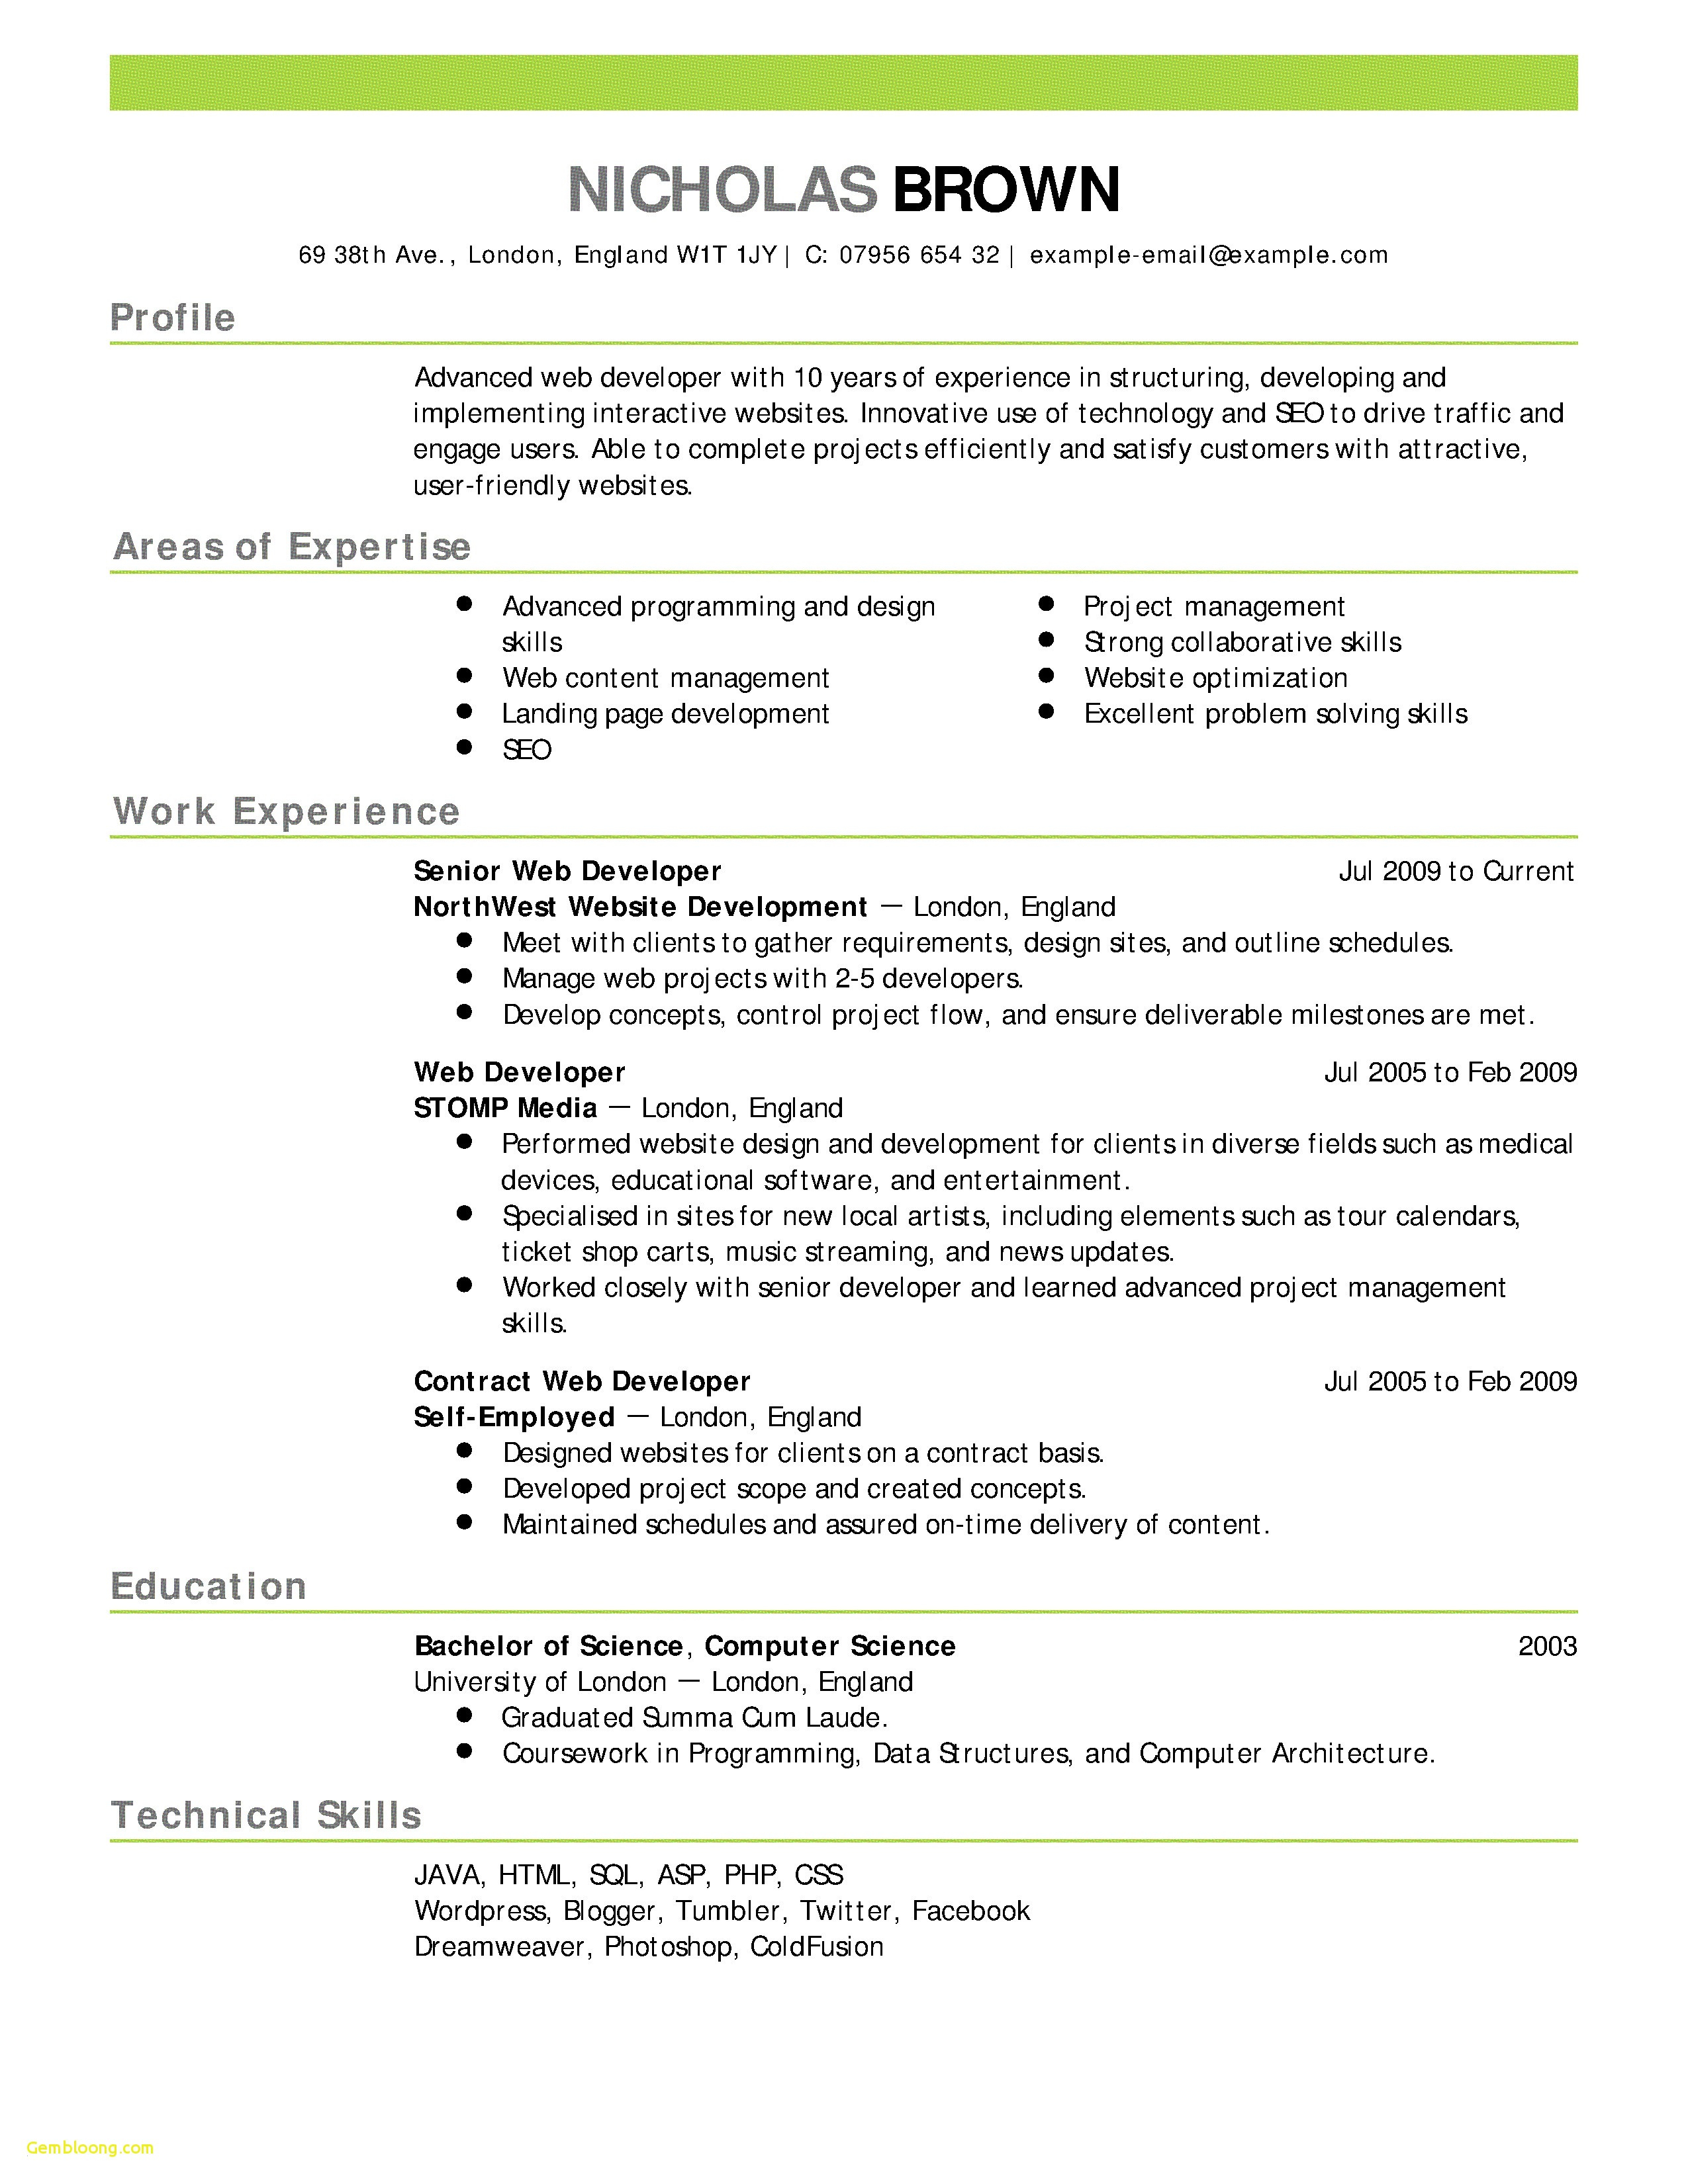 Word Resume Templates Free - Simple Basic Resume format New Simple Job Resume Template Lovely